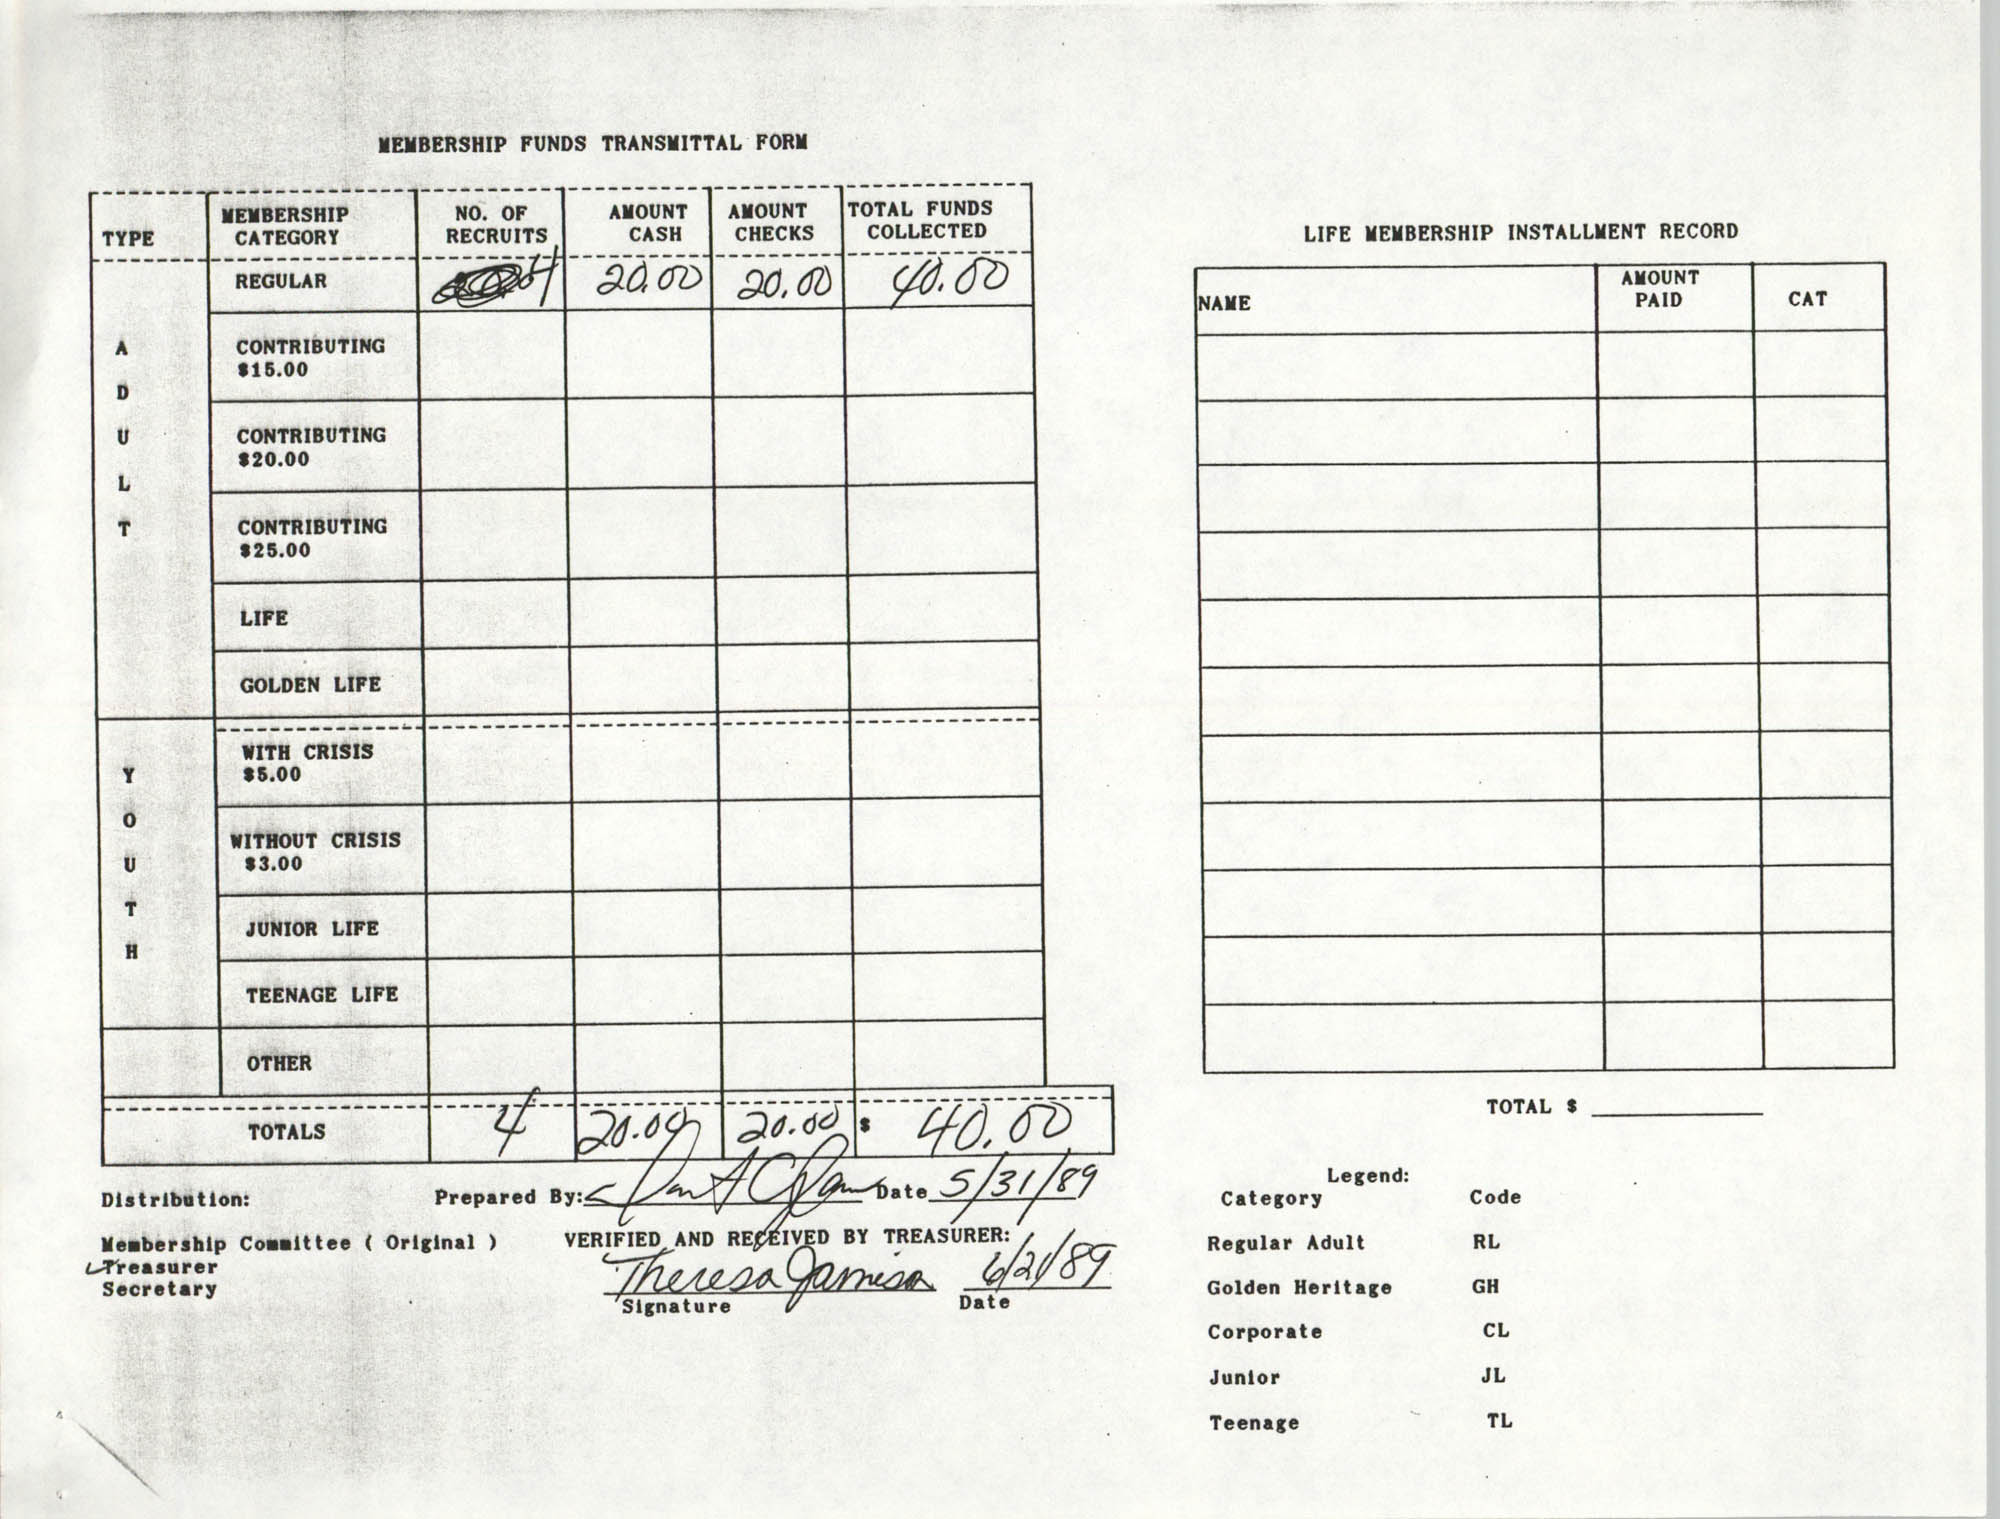 Charleston Branch of the NAACP Funds Transmittal Forms, May 1989, Page 5